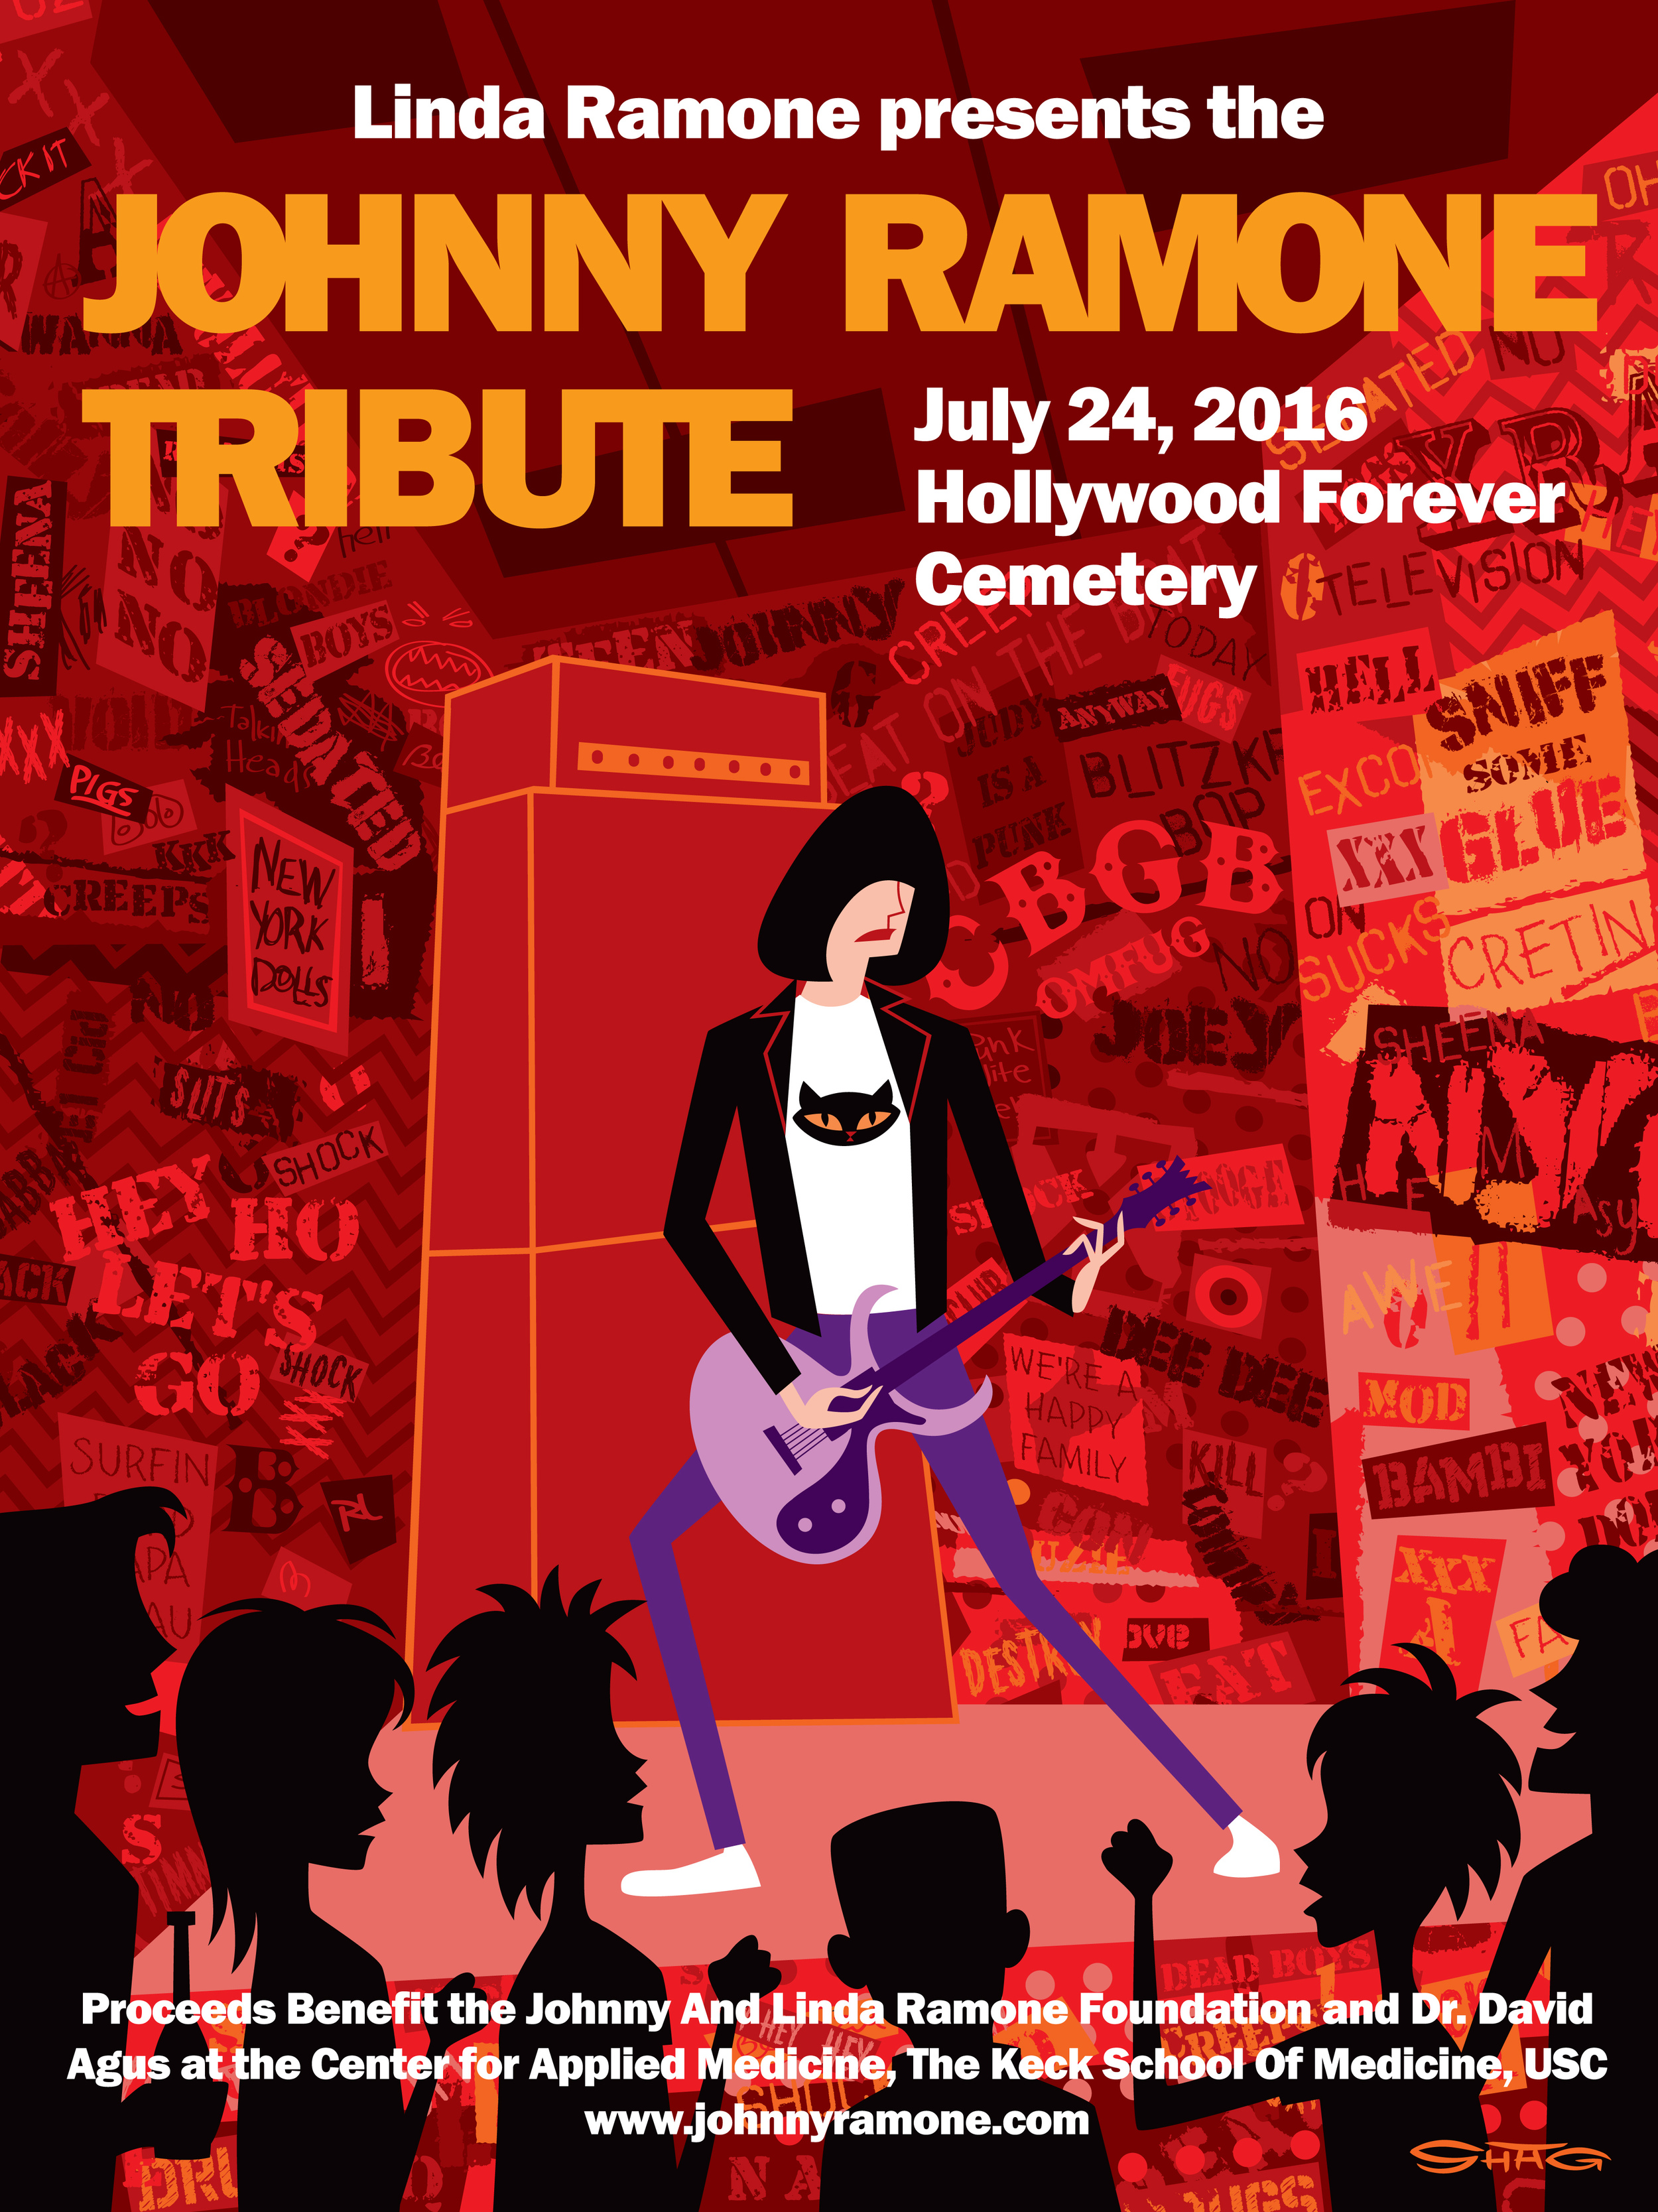 """Henry Rollins, John Doe &Steve Jones   are coming together to celebrate the life and legacy of the one and only Johnny Ramone at Hollywood Forever. Steve Jones is hosting this year's event, Rollins is a special guest, and John Doe will be moderating the Q&A panel discussions with the casts of two of the greatest punk rock movies of all time, Rock 'N'Roll High School and  Ladies and Gentlemen, the Fabulous Stains .  Directed by  Lou Adler  and starring our very own Steve Jones, Ladies and Gentlemen, the Fabulous Stains tells the tale of an all-girl punk band's meteoric rise and fall. Said to have influenced future riot grrrl pioneers such as Courtney Love, Bikini Kill and L7, this is a cult classic you won't want to miss. We will also be welcoming some special surprise guests from the film at the Tribute.  For the first time in over 30 Years,the cast of  Rock 'N'Roll High School will also be reuniting for a very special Q&A panel discussion before the screening of the film! Mary Woronov (Principal Evelyn Togar), Clint Howard  (Eaglebauer), Vince Van Patten (Tom Roberts), will be joining PJ Soles (Riff Randell), """"King of the Bs"""" Roger Corman (producer) and Allan Arkush (director) and the writers of the film, Richard Whitley and Russ Dvonch to share what it was really like filming with Ramones and creating one of punk rock's greatest films.  Also featured is an exhibition of Metallica guitarist  Kirk Hammett 's collection of movie monster memorabilia in the Hollywood Forever mausoleum, Morrison Hotel Gallery's exhibit of Ramones/punk photography, exclusive Ramones merchandise and fans from all over the world.  Tickets are available now at an early-bird discount. Get them while they're only $20  here . Kids under 12 get in free.  Proceeds from the celebration will benefit the  Johnny and Linda Ramone Foundation , supporting Dr. David Agus at the Keck School of Medicine, USC.Find out more  here .Special thanks to our sponsors, KLOS, Cold Cock Whiskey, Punk Rock Militia W"""